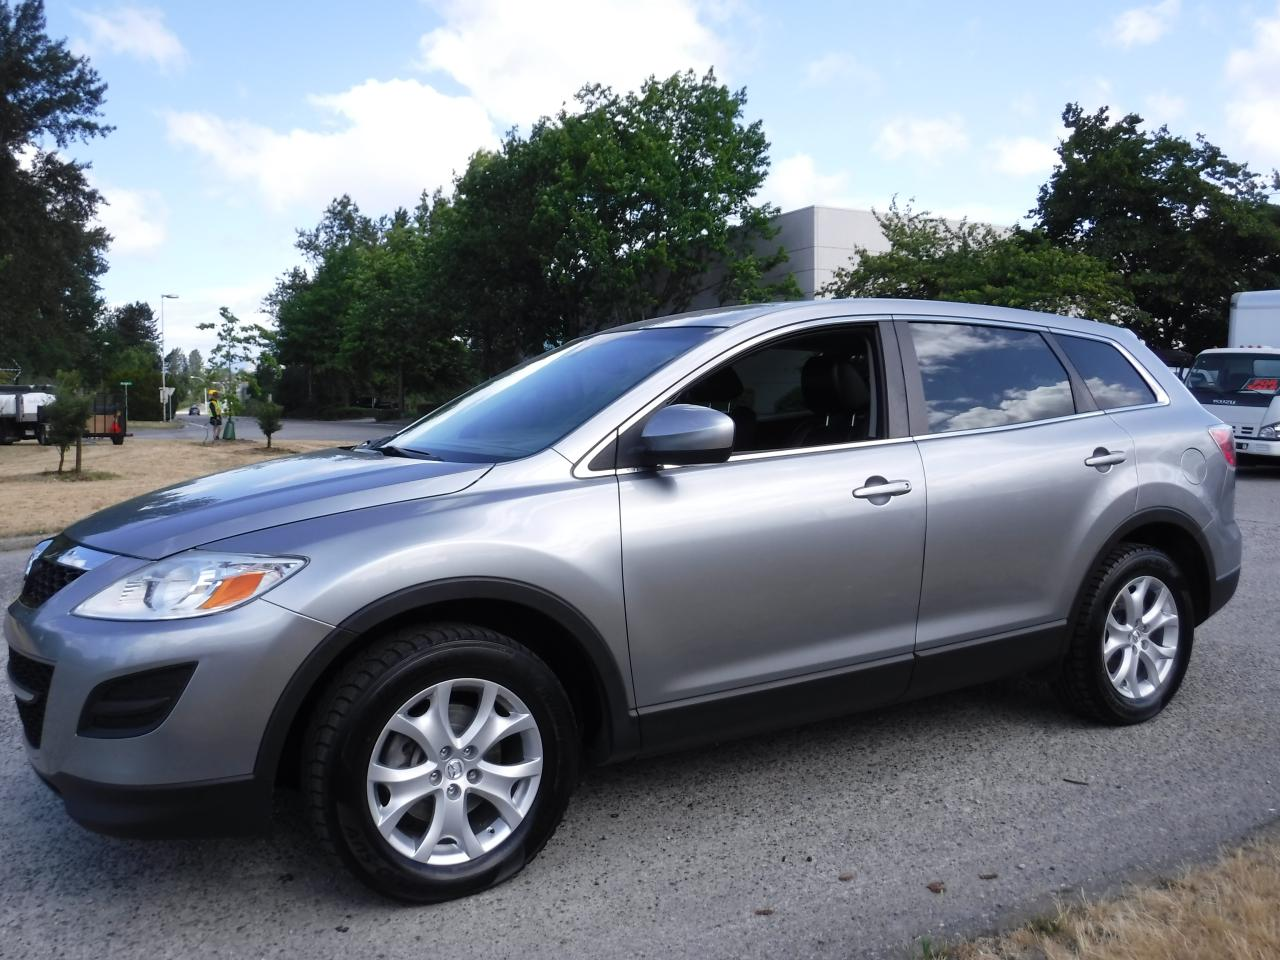 3rd Row Suv For Sale >> Used 2012 Mazda Cx 9 Touring Awd With 3rd Row Seating For